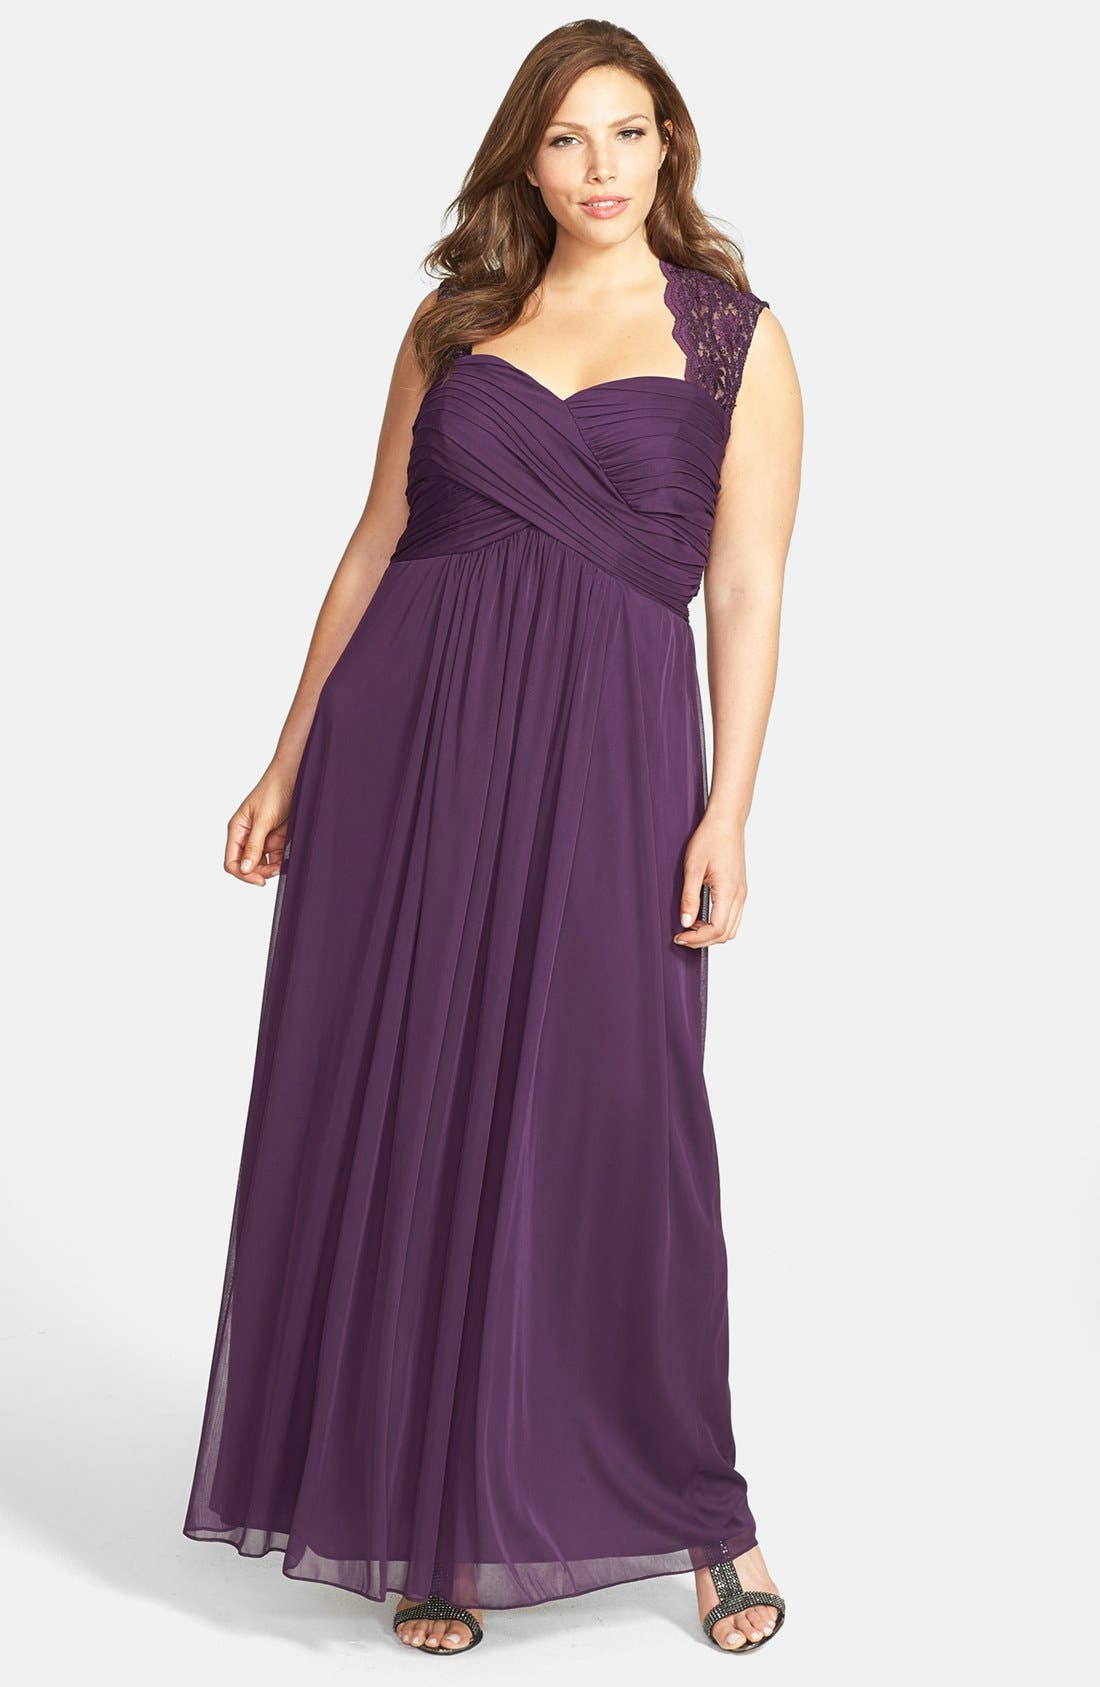 Alternate Image 1 Selected - Xscape Lace Yoke Ruched Jersey Gown (Plus Size)